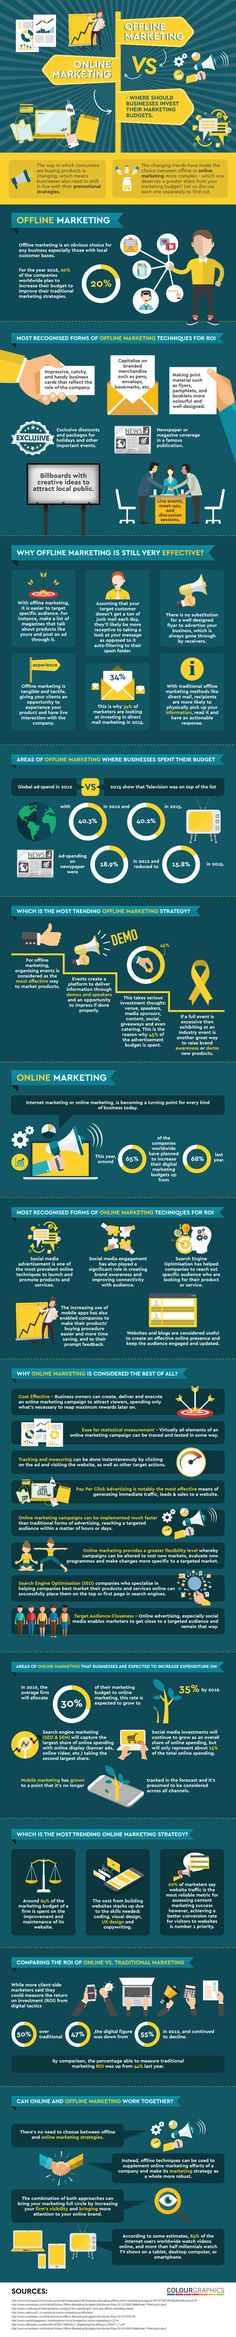 Online vs Offline Marketing A Complete Guide to Promote Your Business